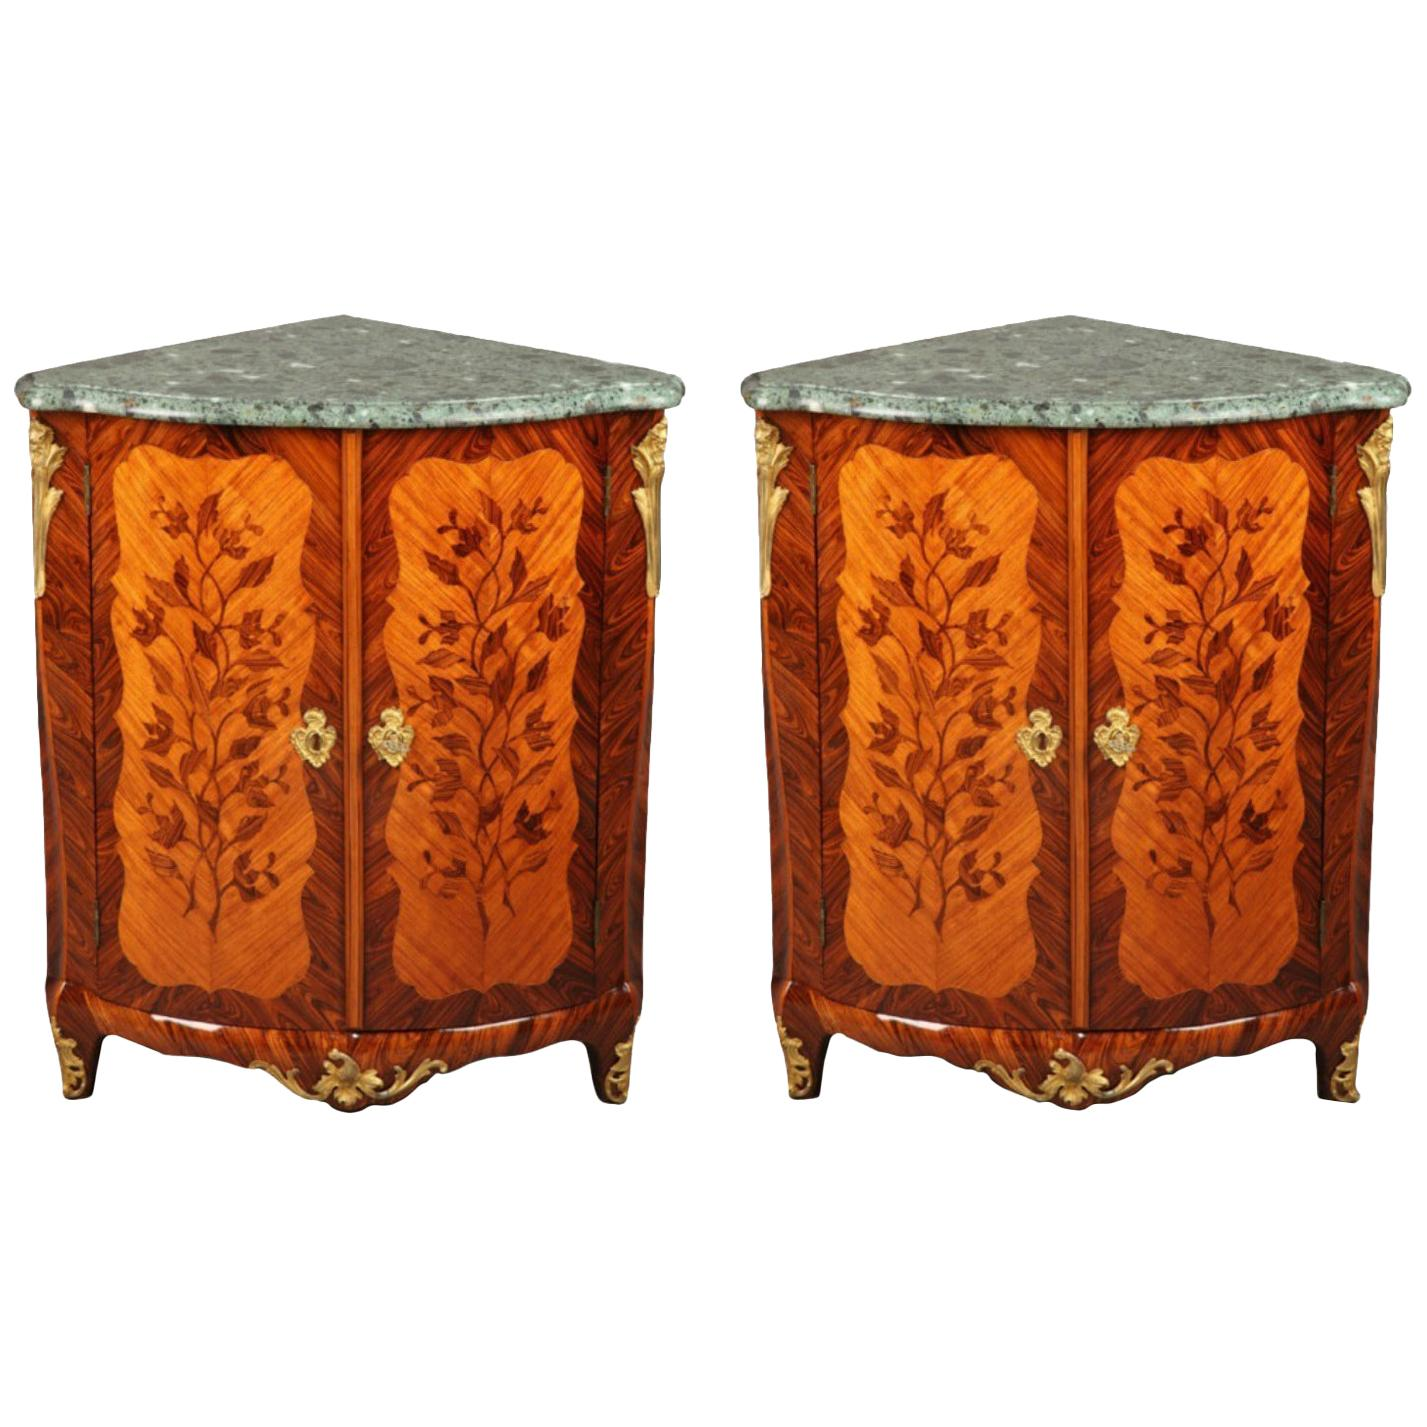 18th Century Corner Cabinets with Flower Marquetry